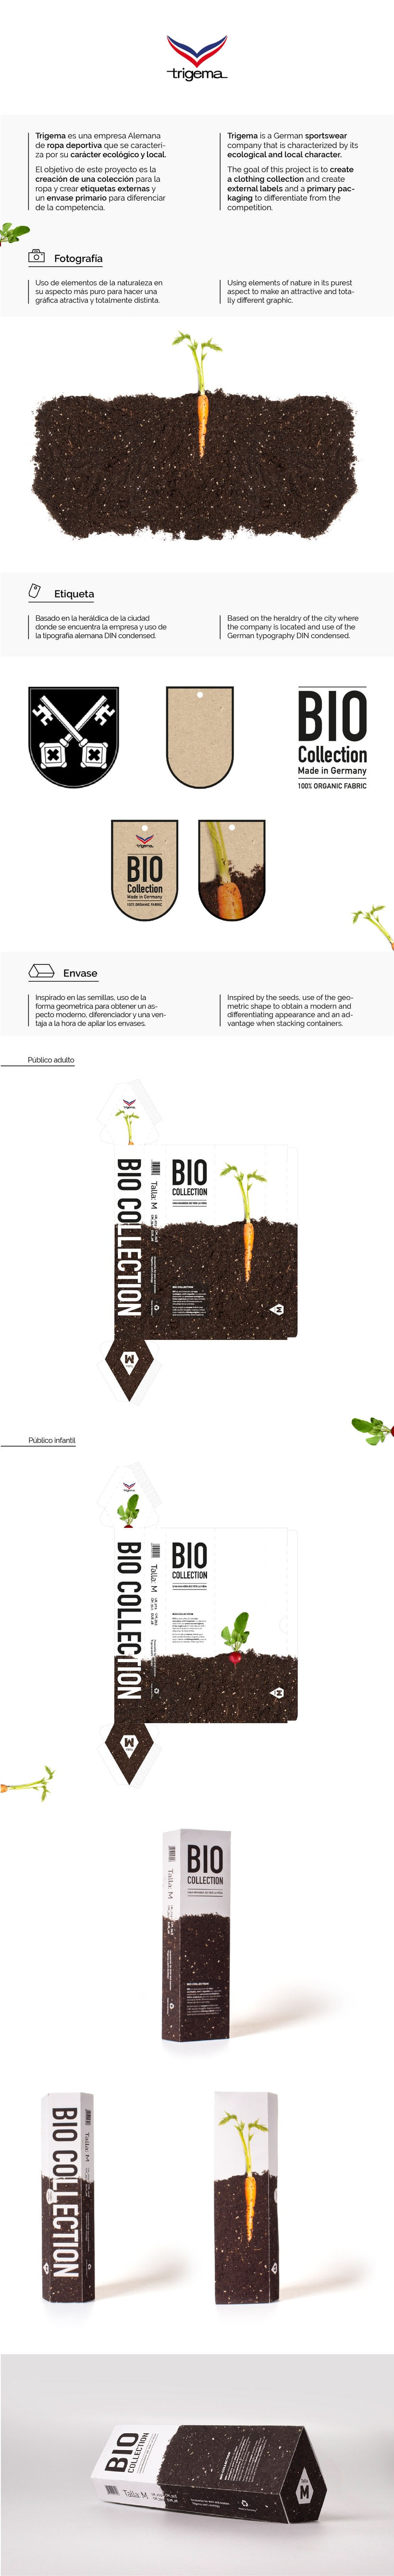 BIO COLLECTION -Packaging -1